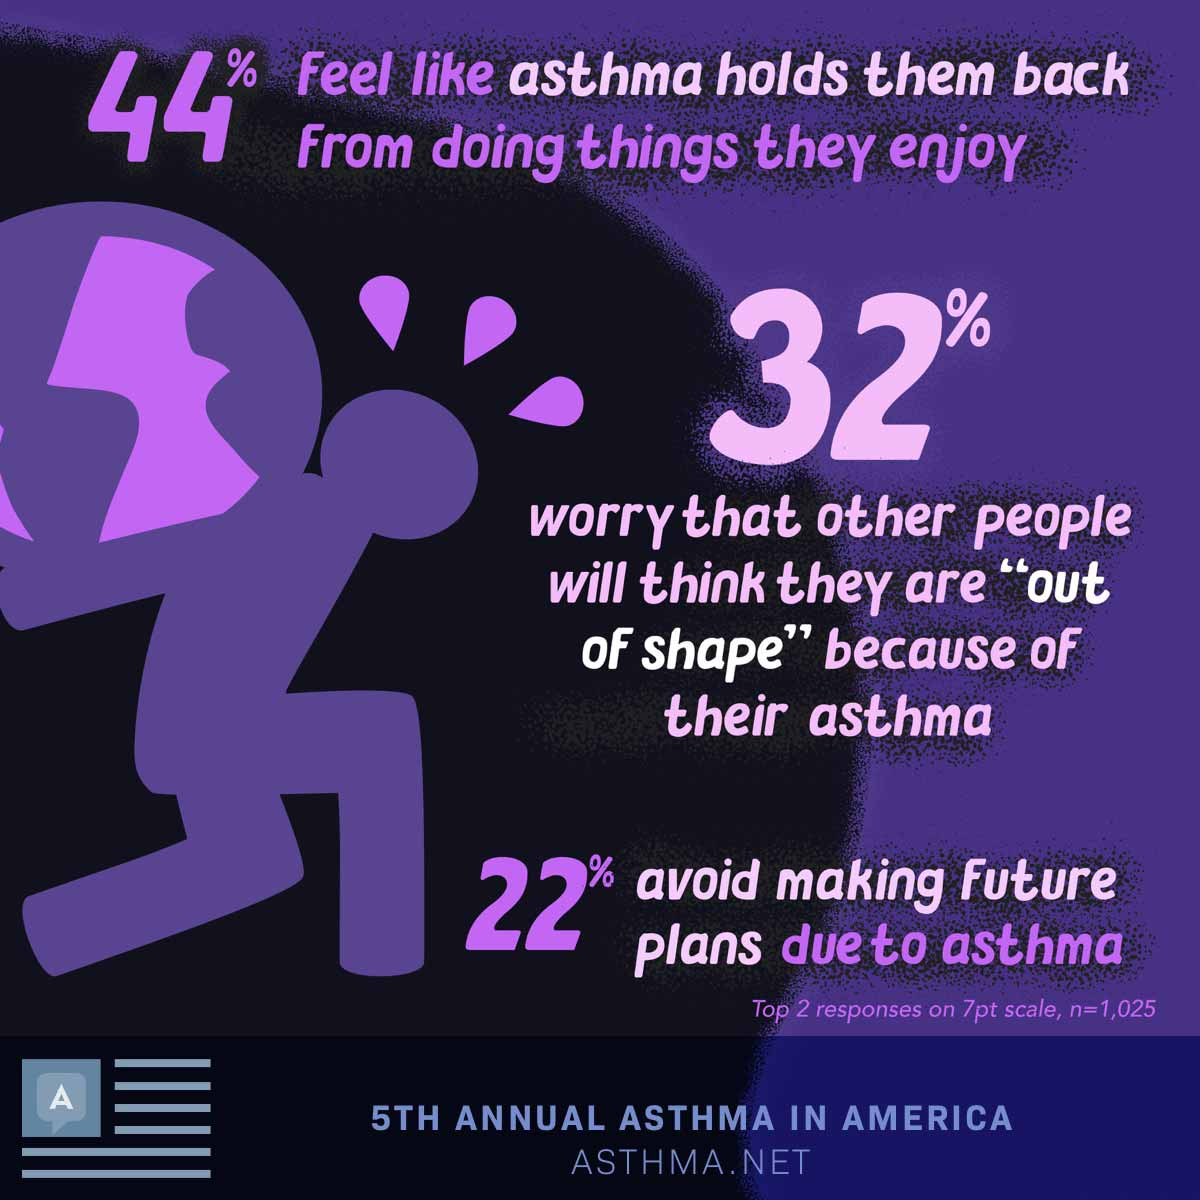 "44% feel like asthma holds them back from doing things they enjoy. 32% worry that other people will think they are ""out of shape"" because of their asthma. 22% avoid making future plans due to asthma"